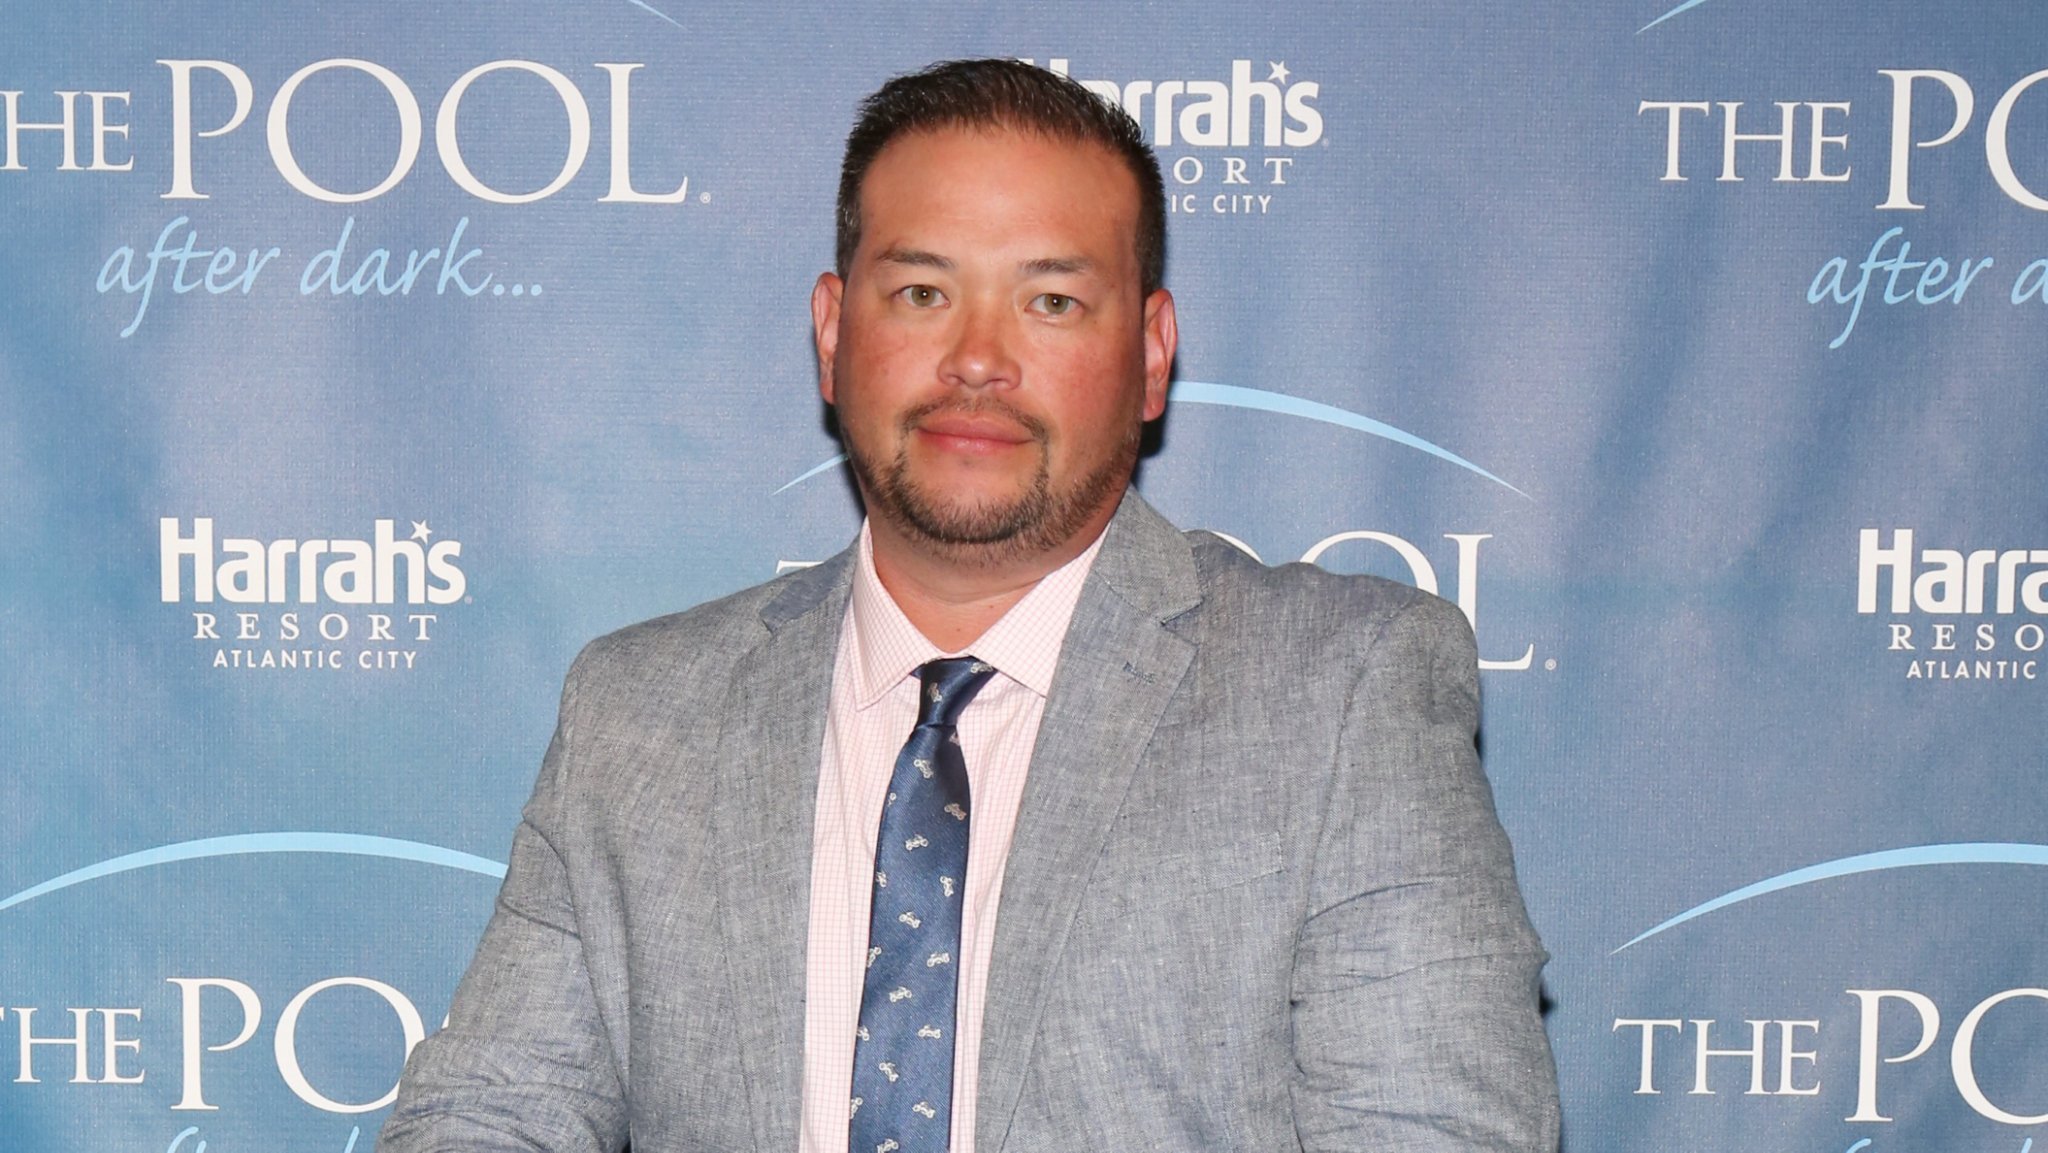 Jon Gosselin denies abuse allegations from 16-year-old son Collin